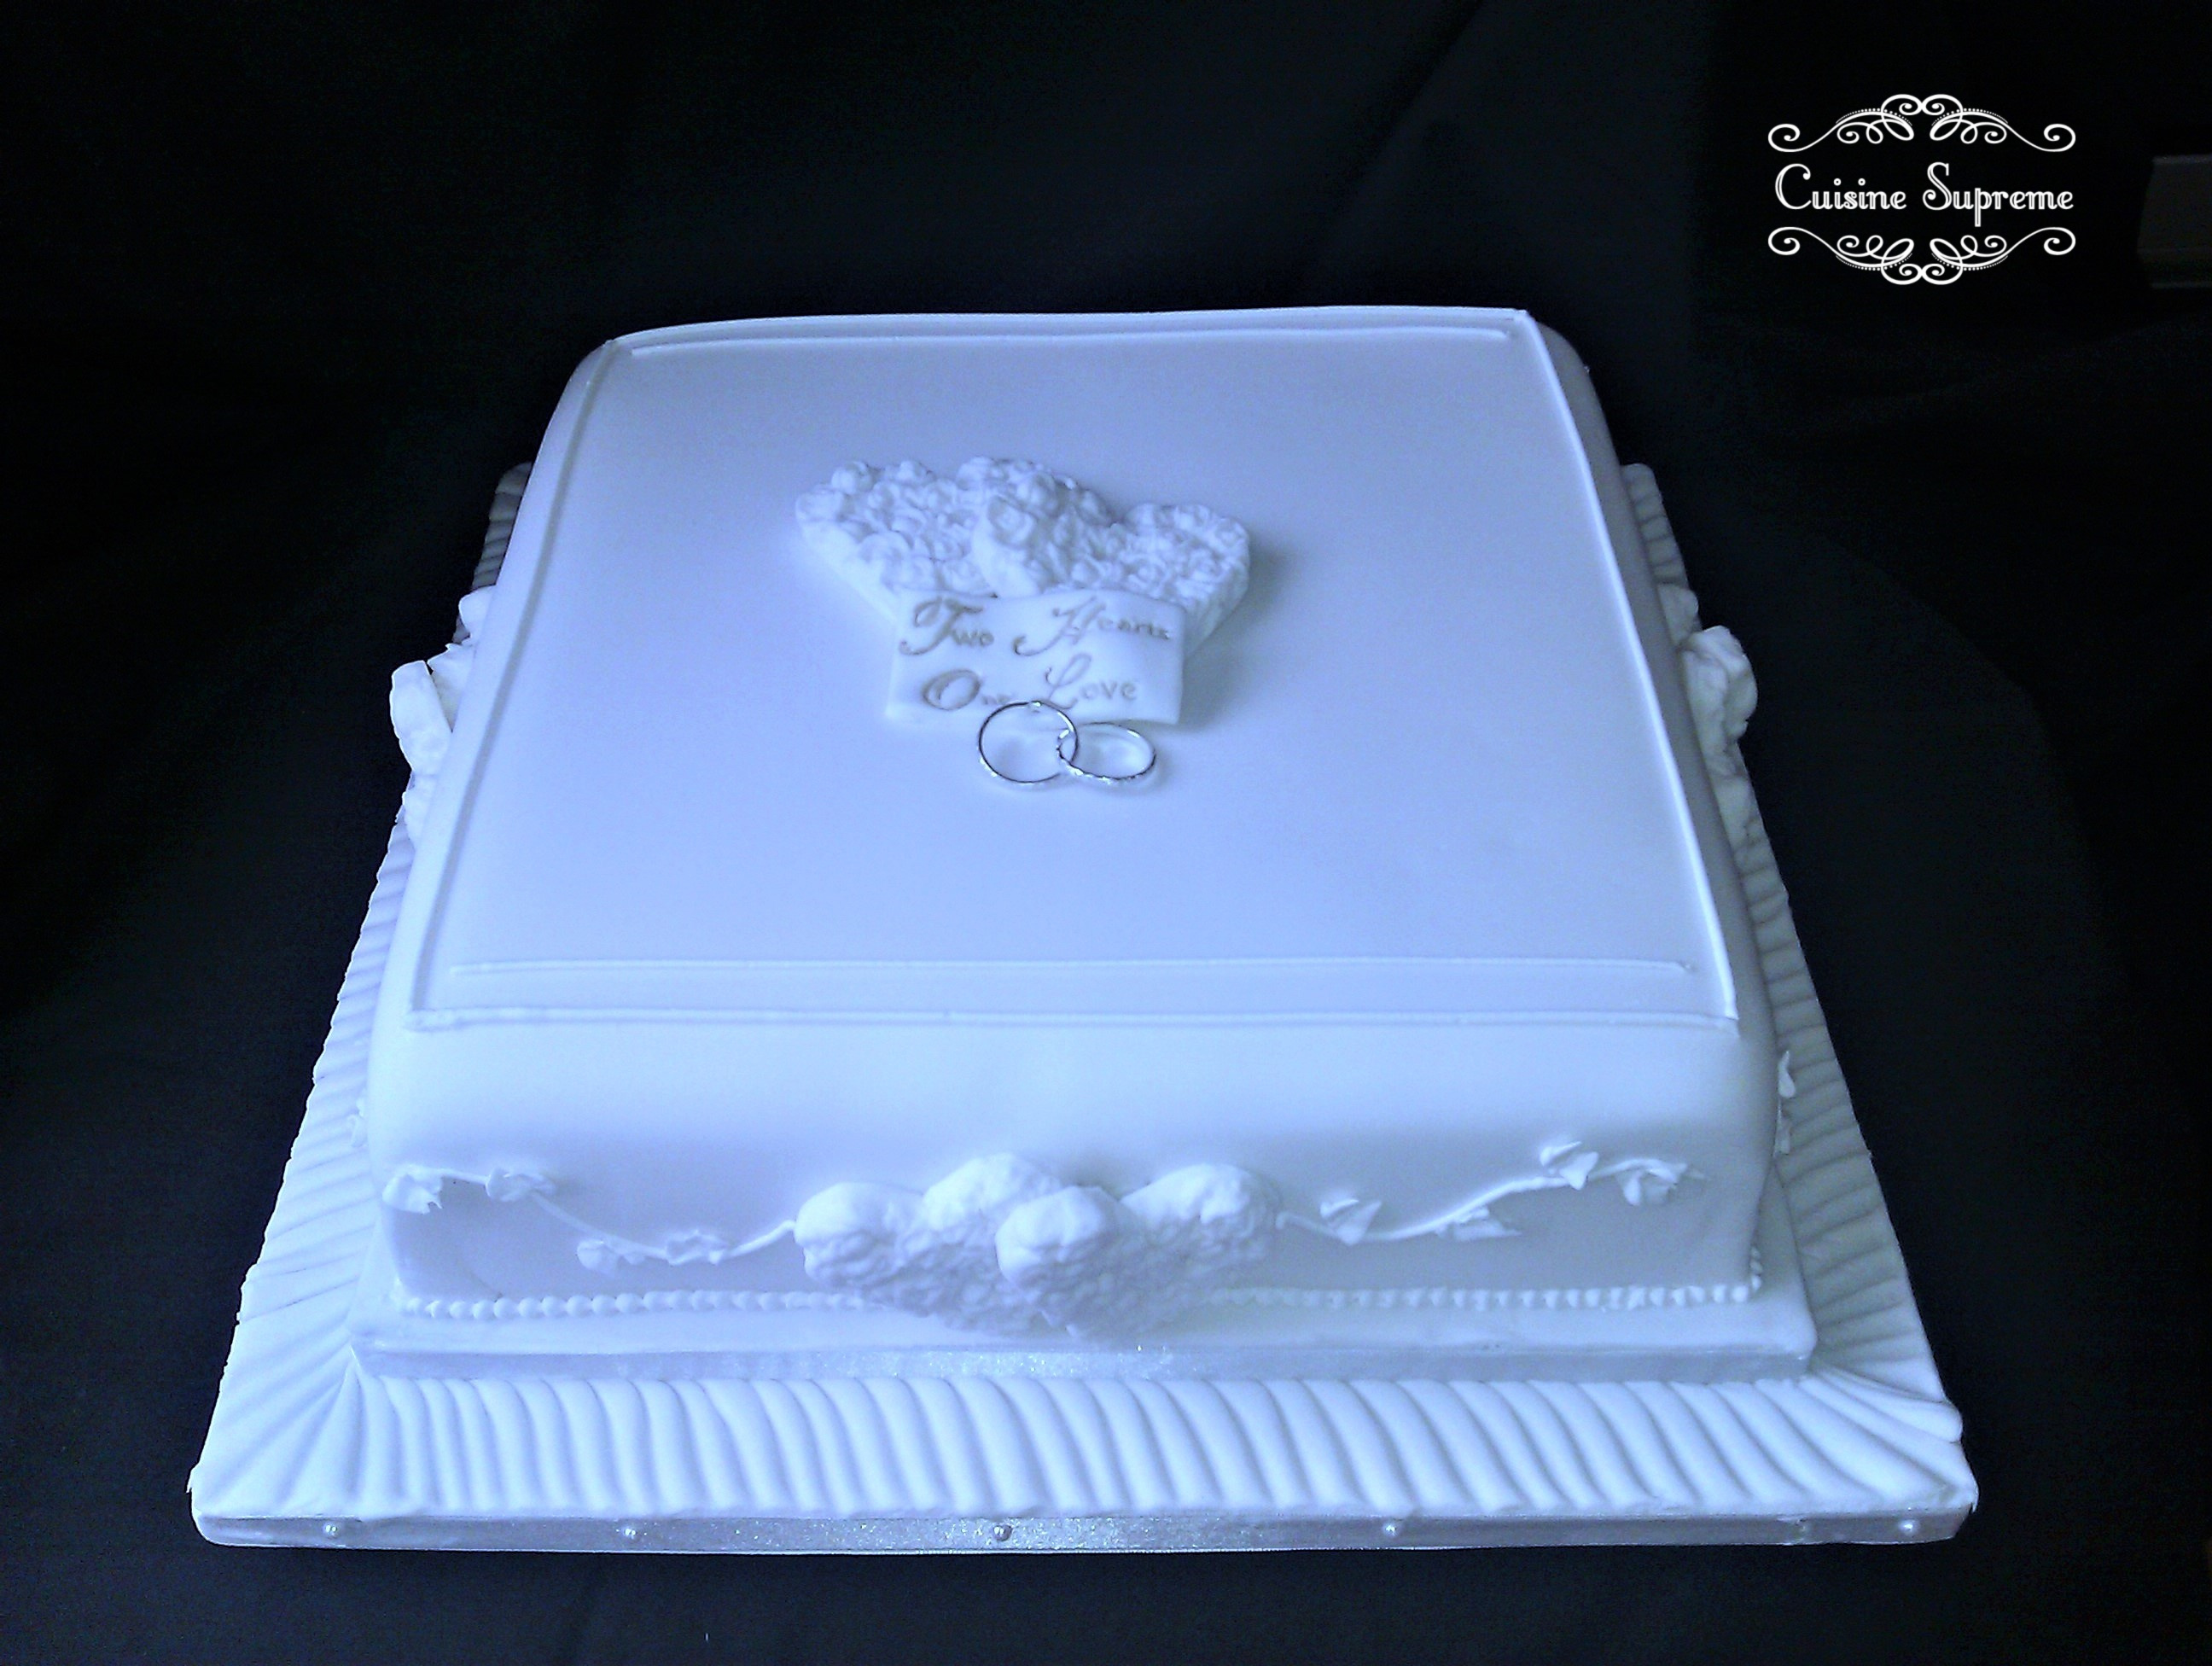 Wedding Cake All White - July 2014